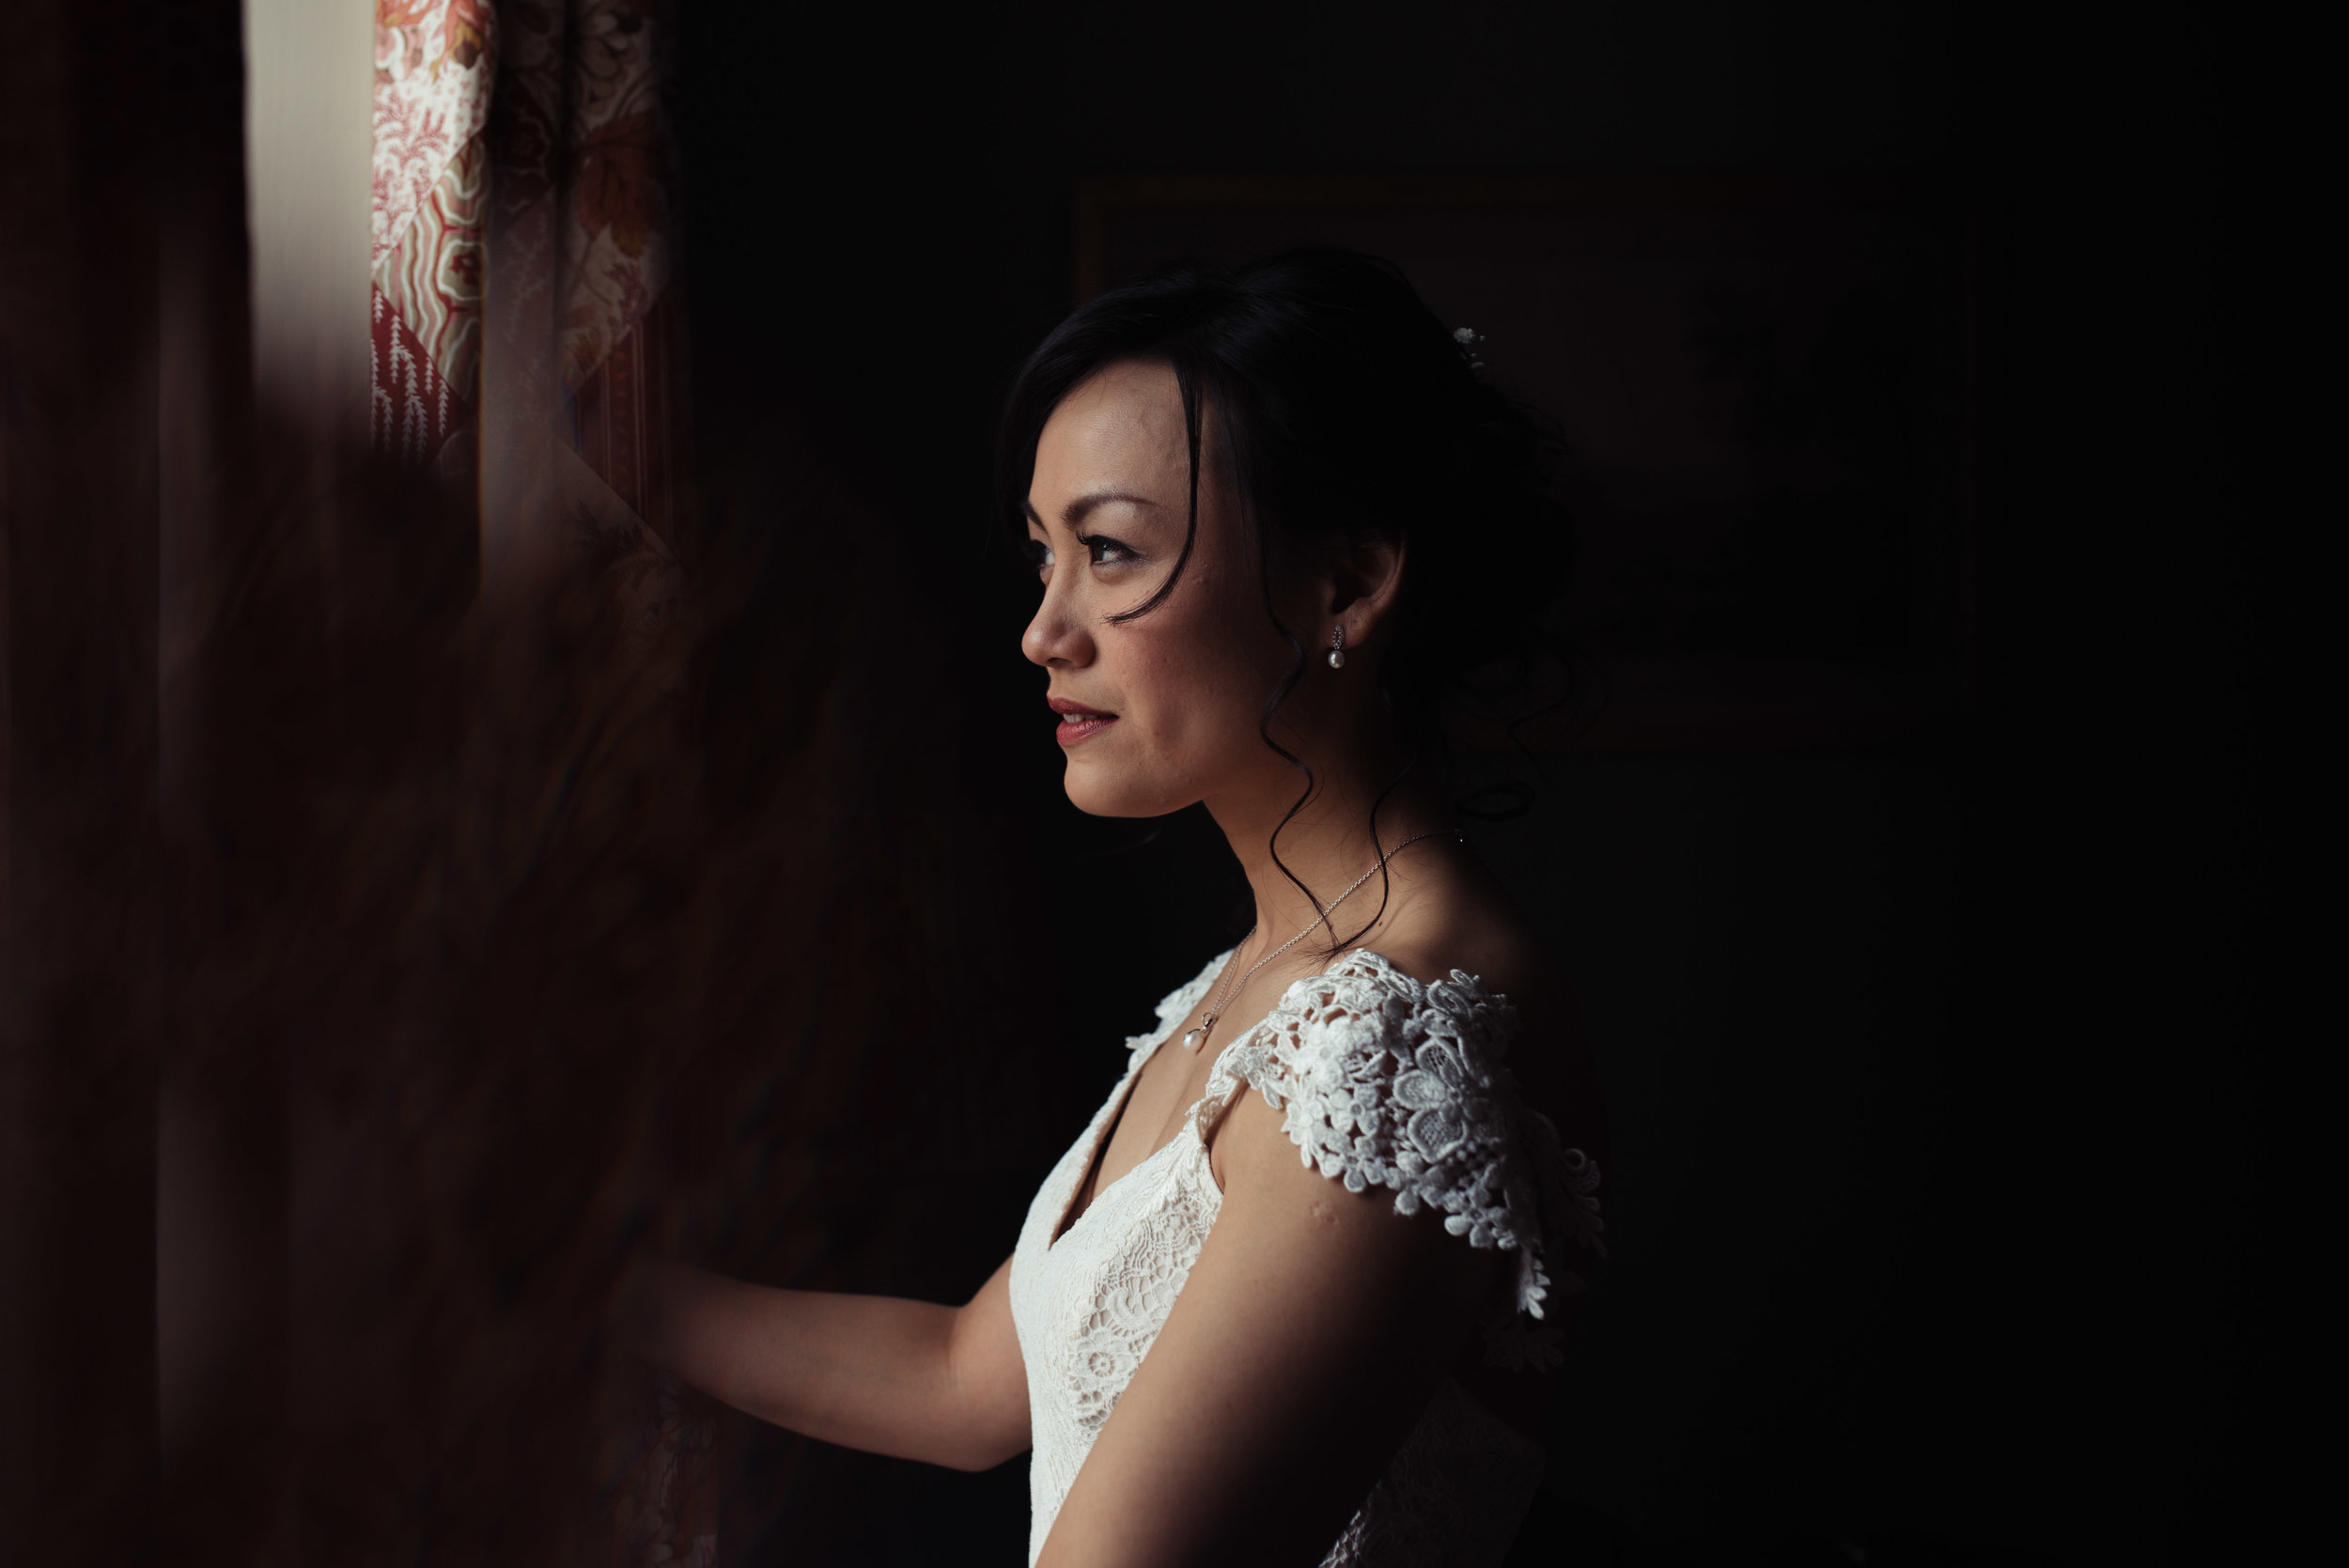 the bride stands by the window and is lit with natural light